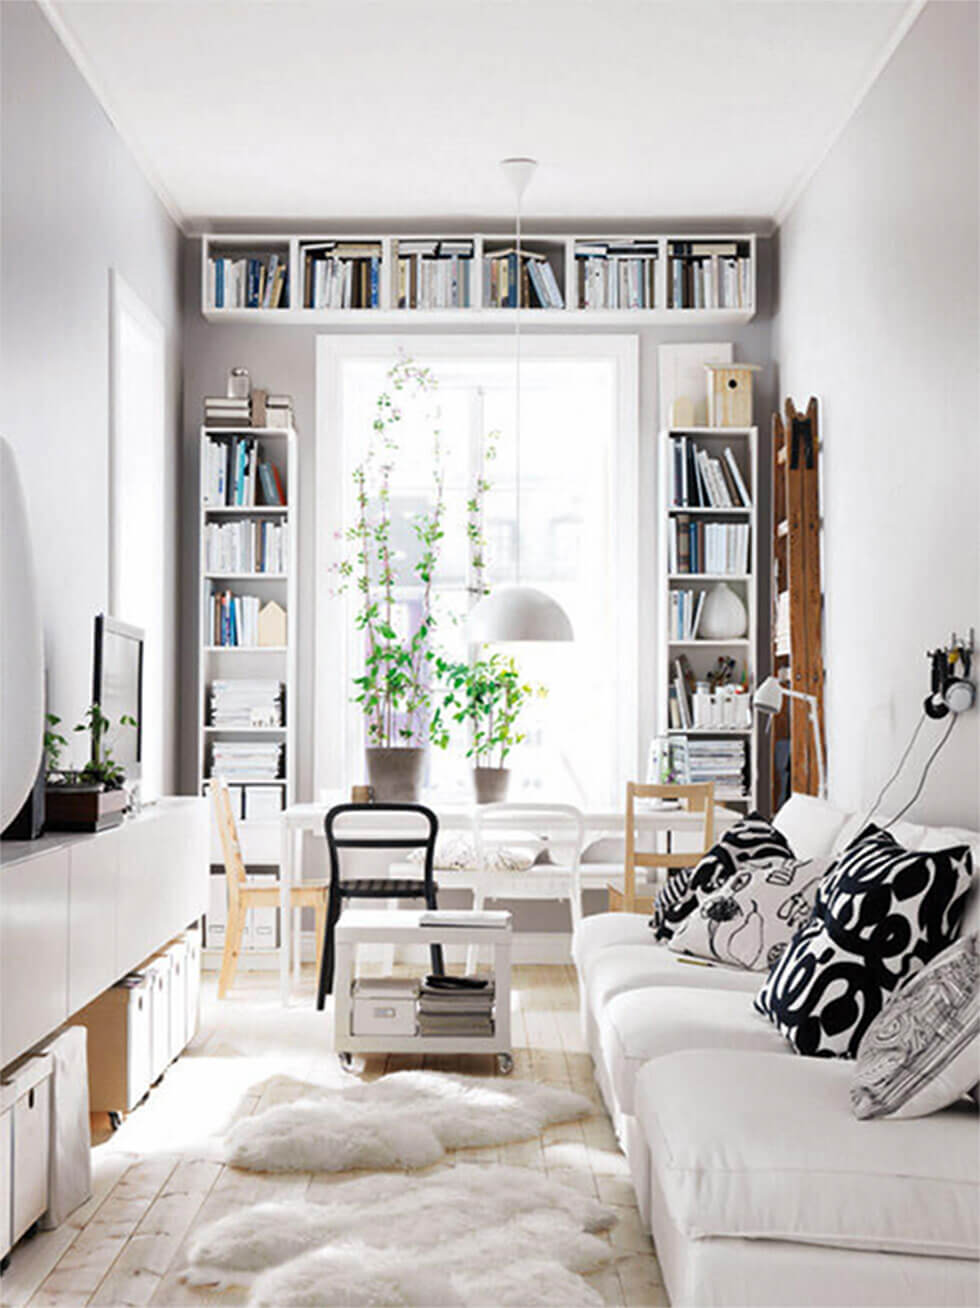 Small white living room with a white sofa, rug and bookshelves